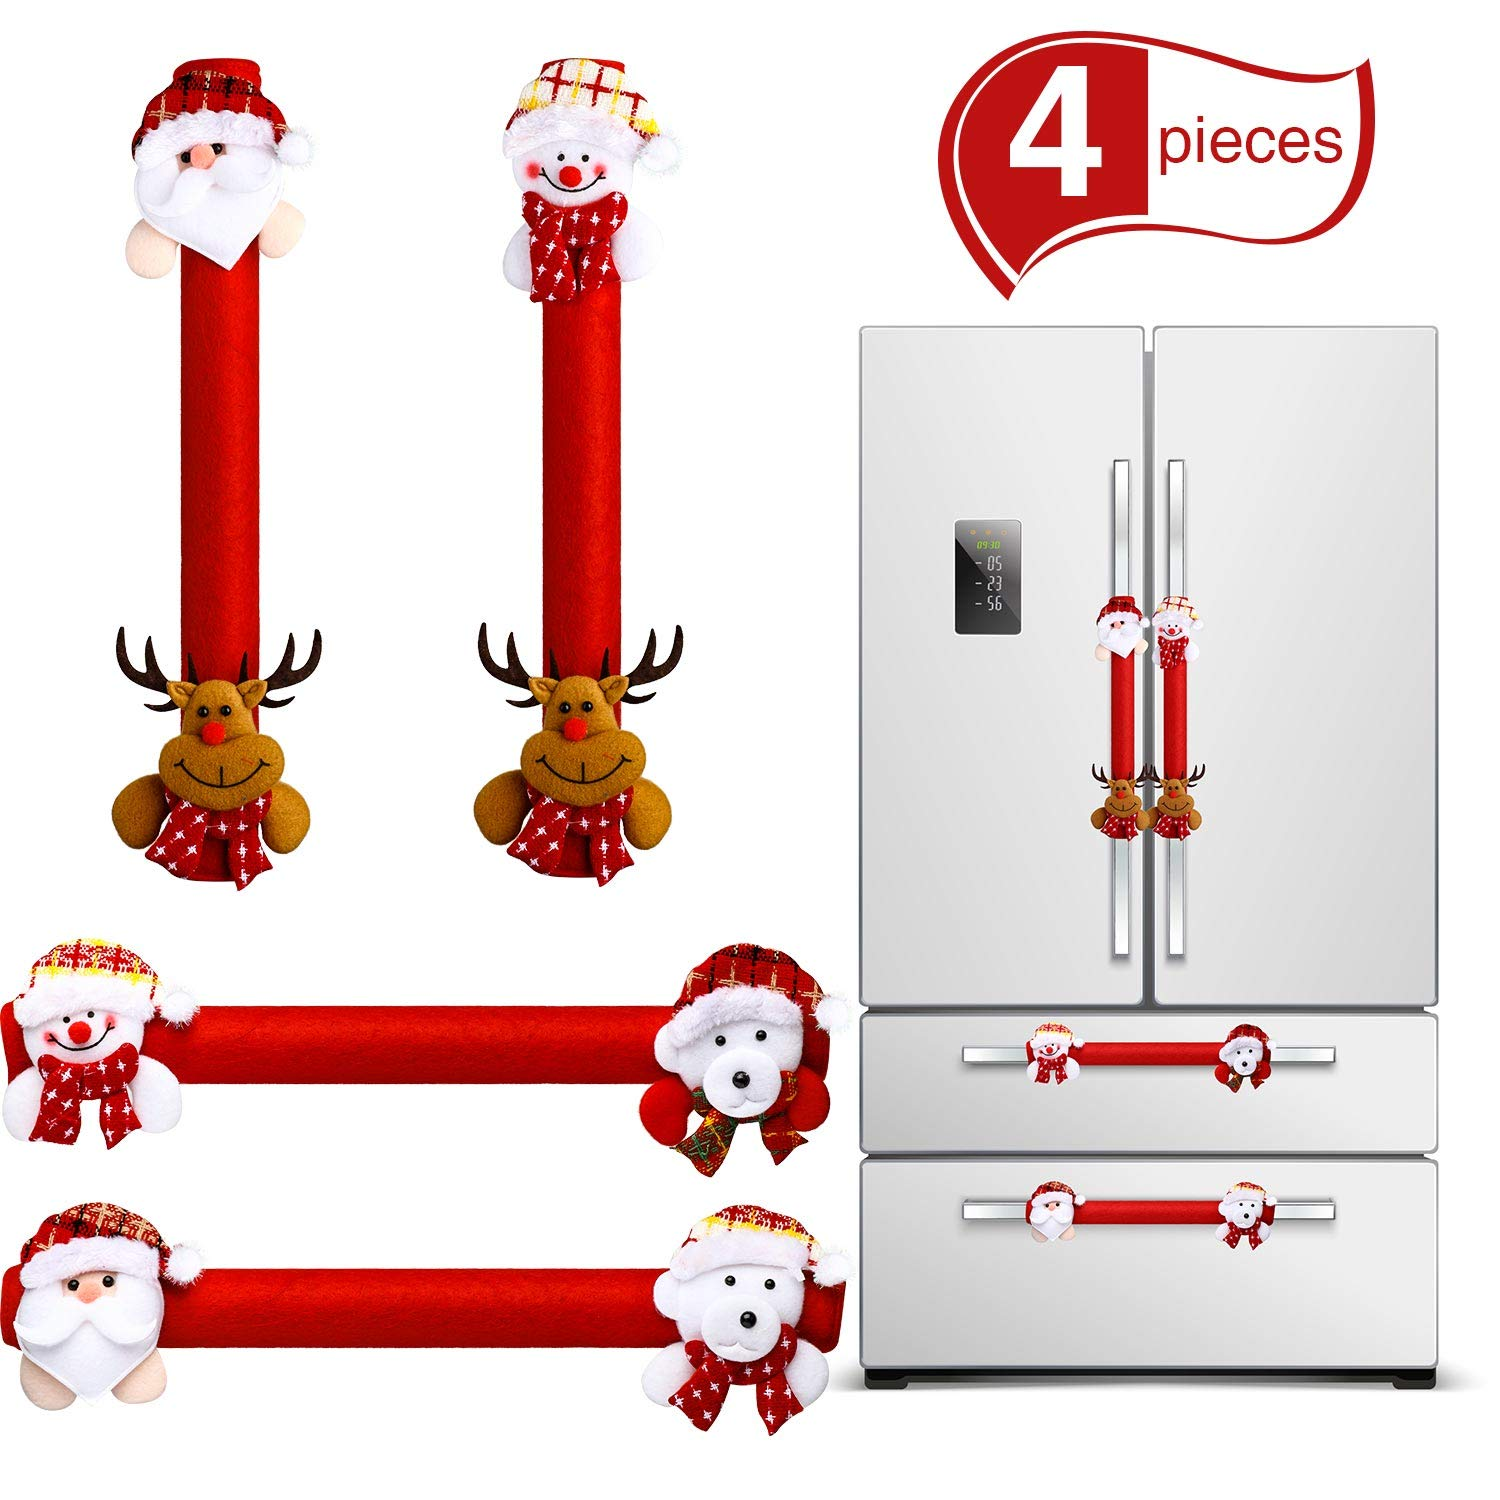 4 Pieces Christmas Refrigerator Door Handle Cover, Snowman Kitchen Appliance Microwave Oven Dishwasher Handle Cover for Christmas Decorations (Red Christmas)